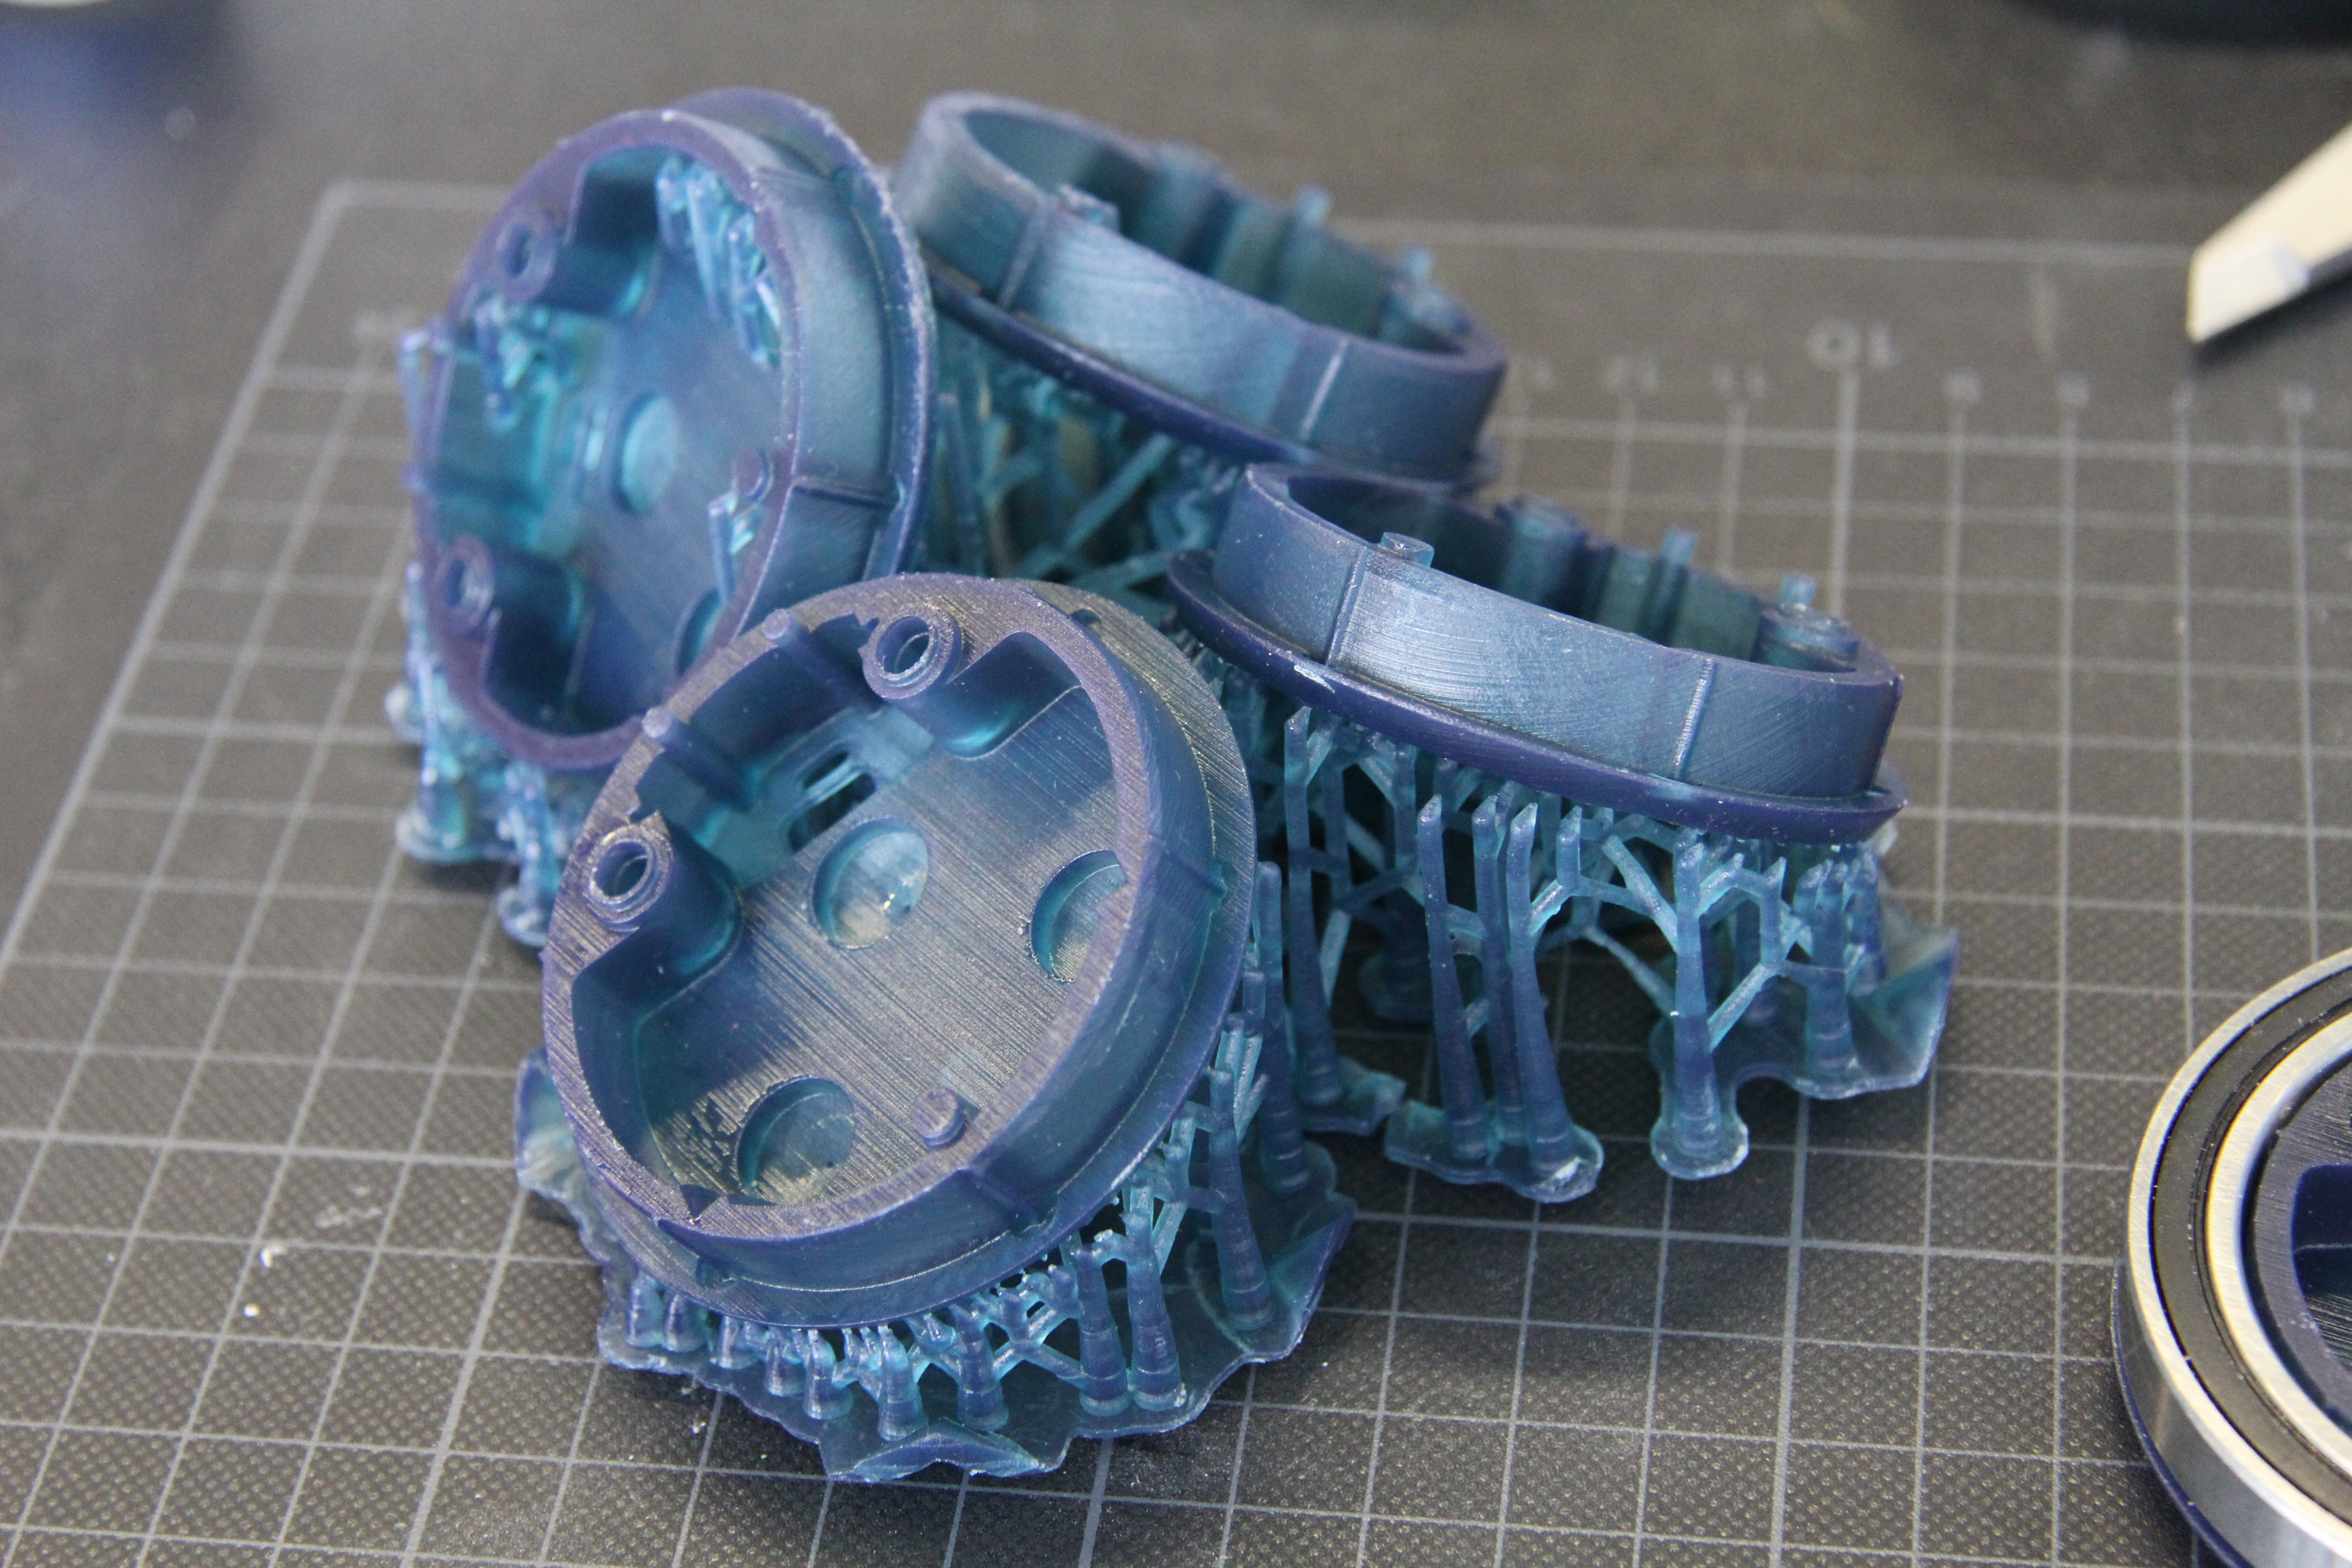 3D printing with tough resin